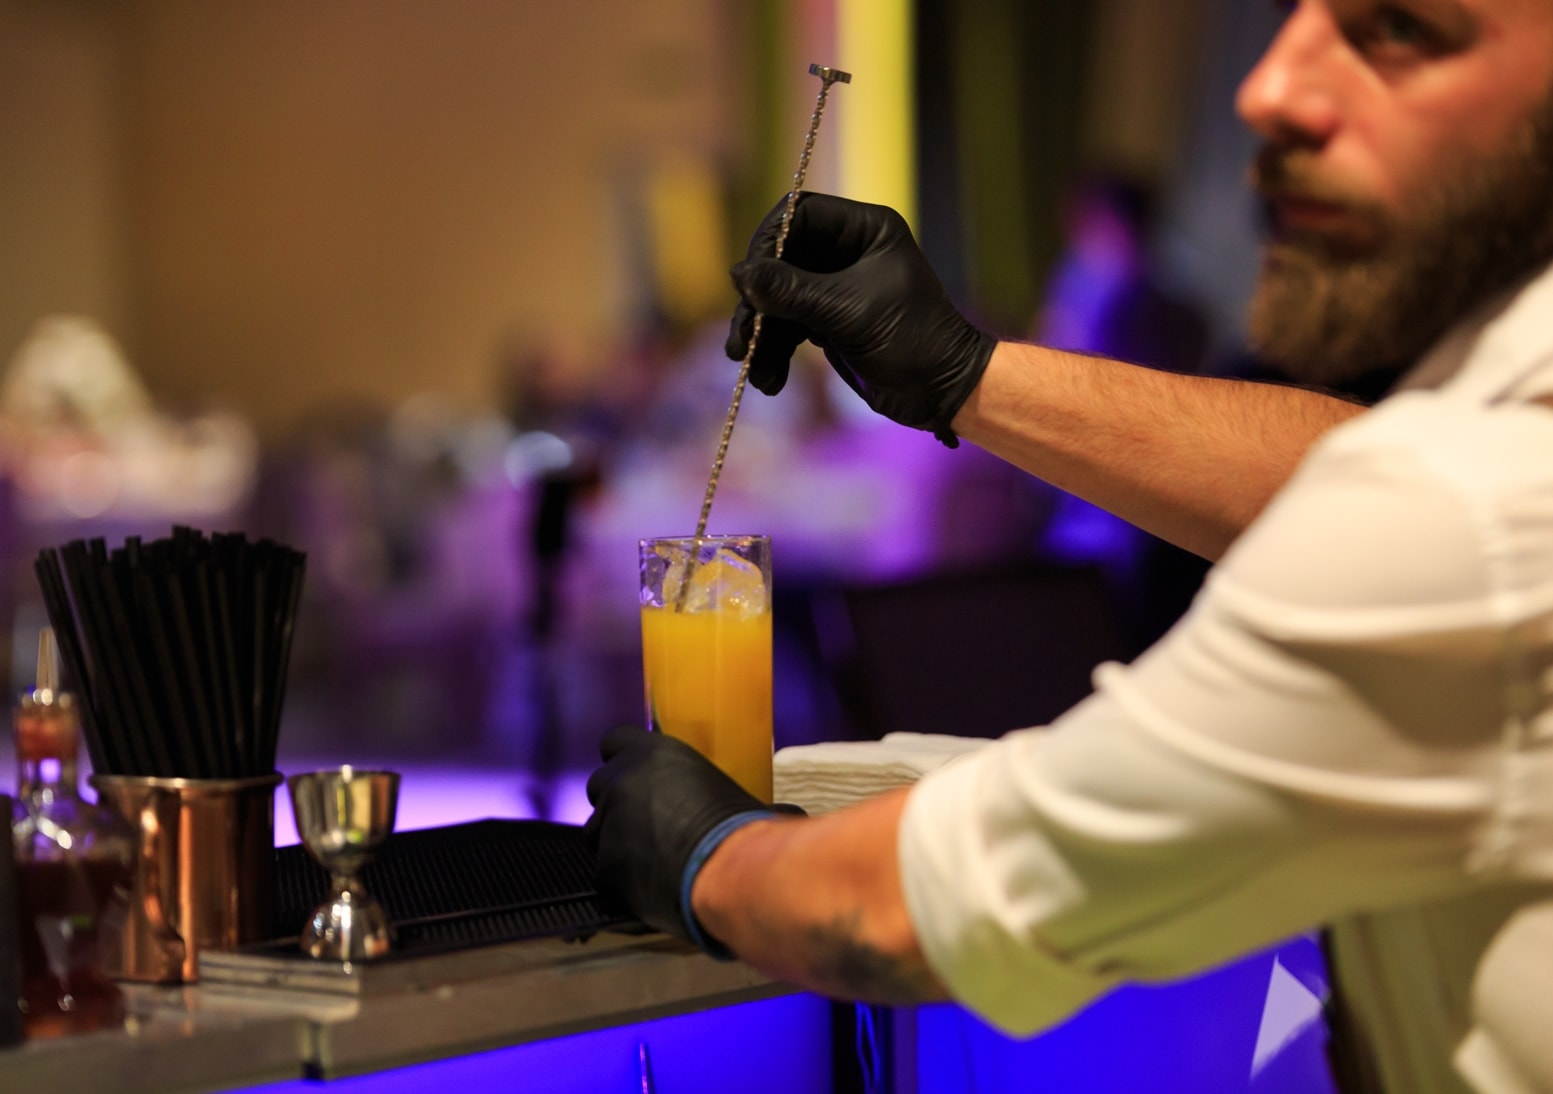 odissea_events_barman-min